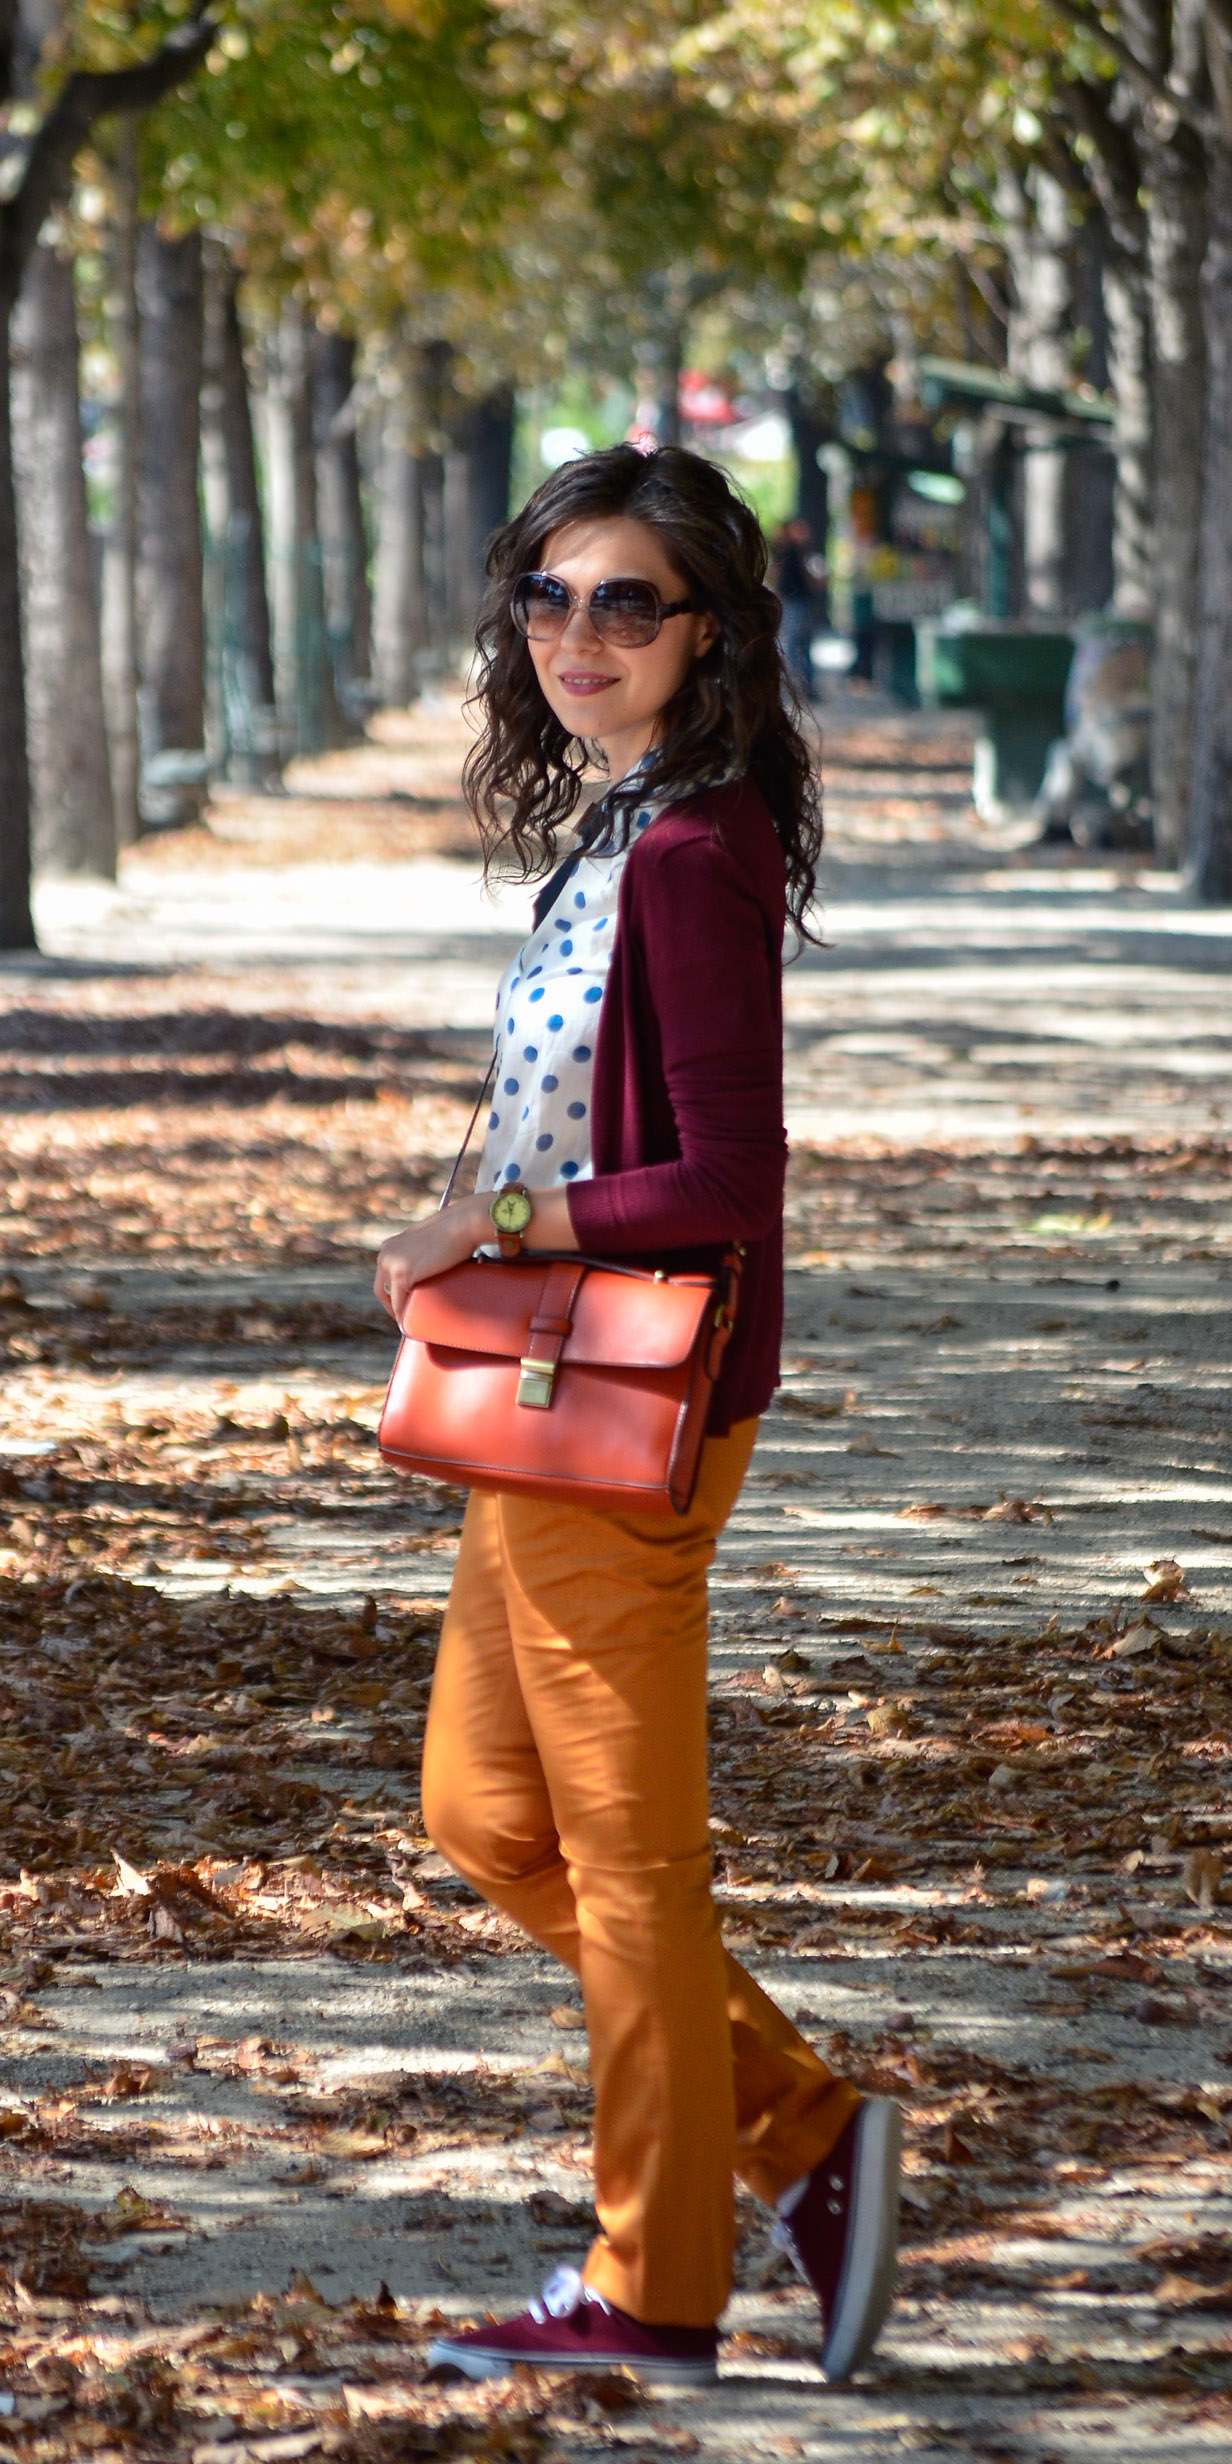 preppy fall outfit in Paris mustard pants burgundy sweater sneakers H&M orange satchel bag dotted shirt blue dots black bow tie champs elysees jardin de tuileries eiffel tower